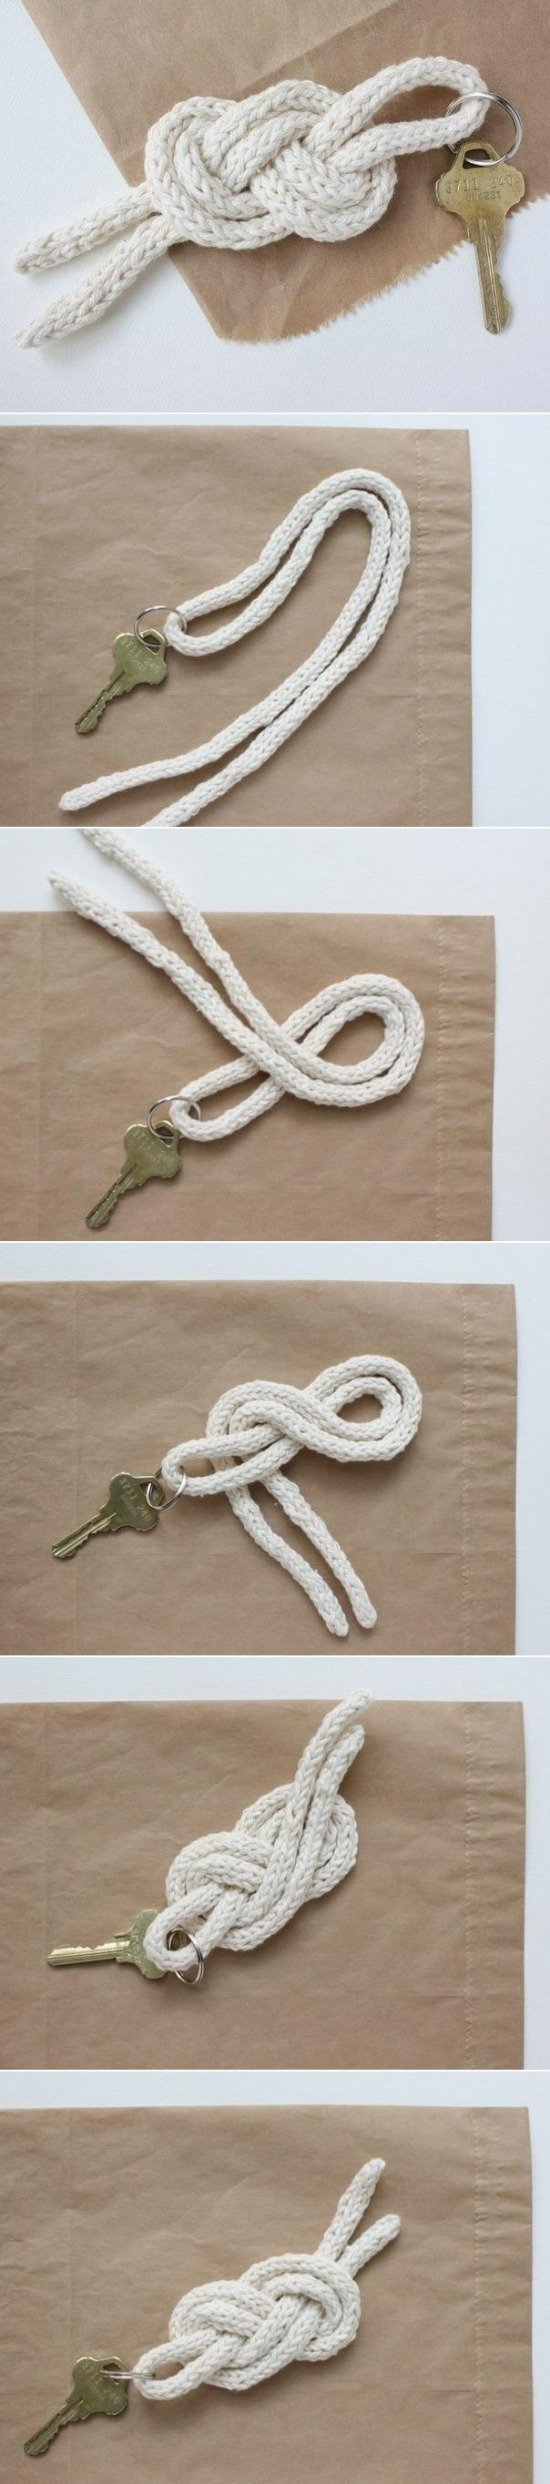 DIY-Easy-Knot-Key-Holder.jpg